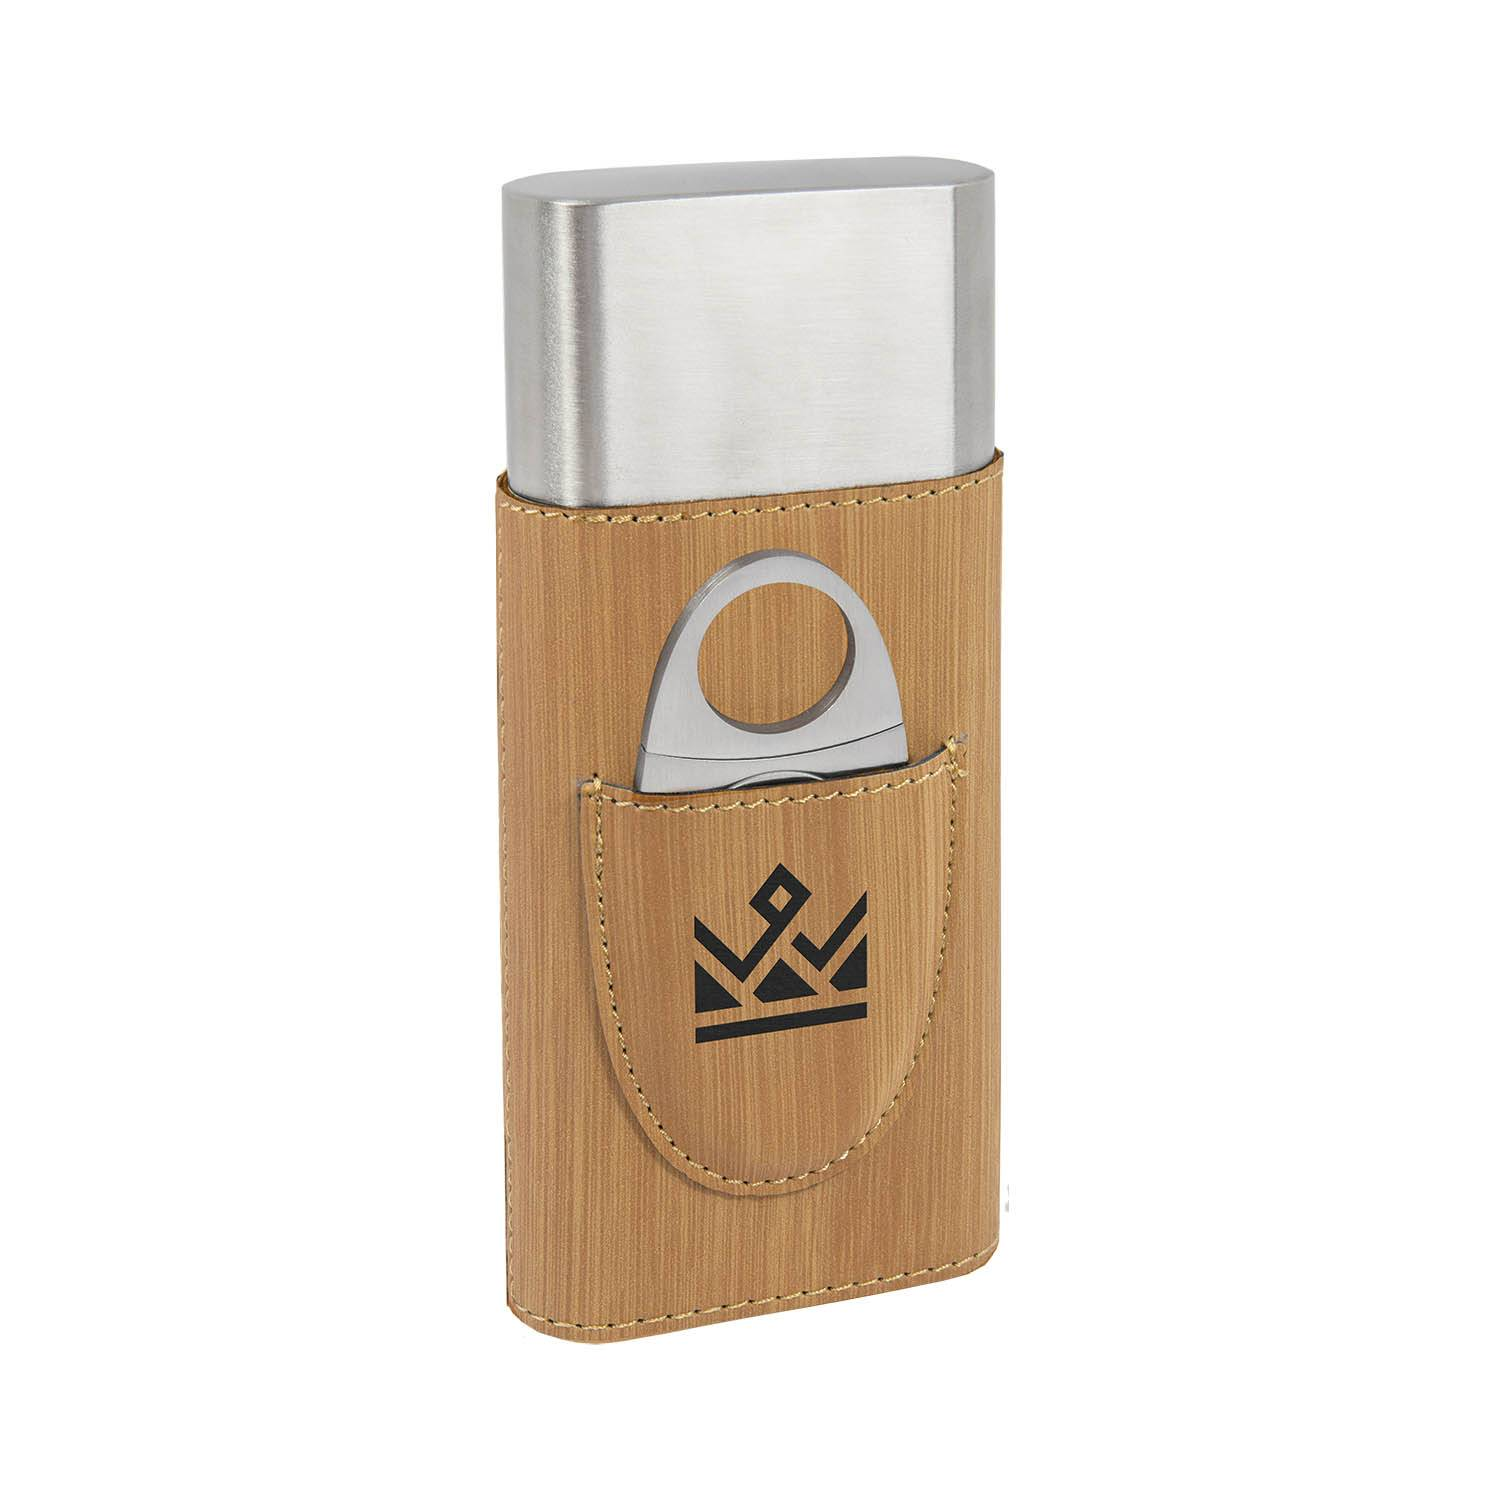 CM372BB - Leatherette Cigar Case with Cutter, Bamboo